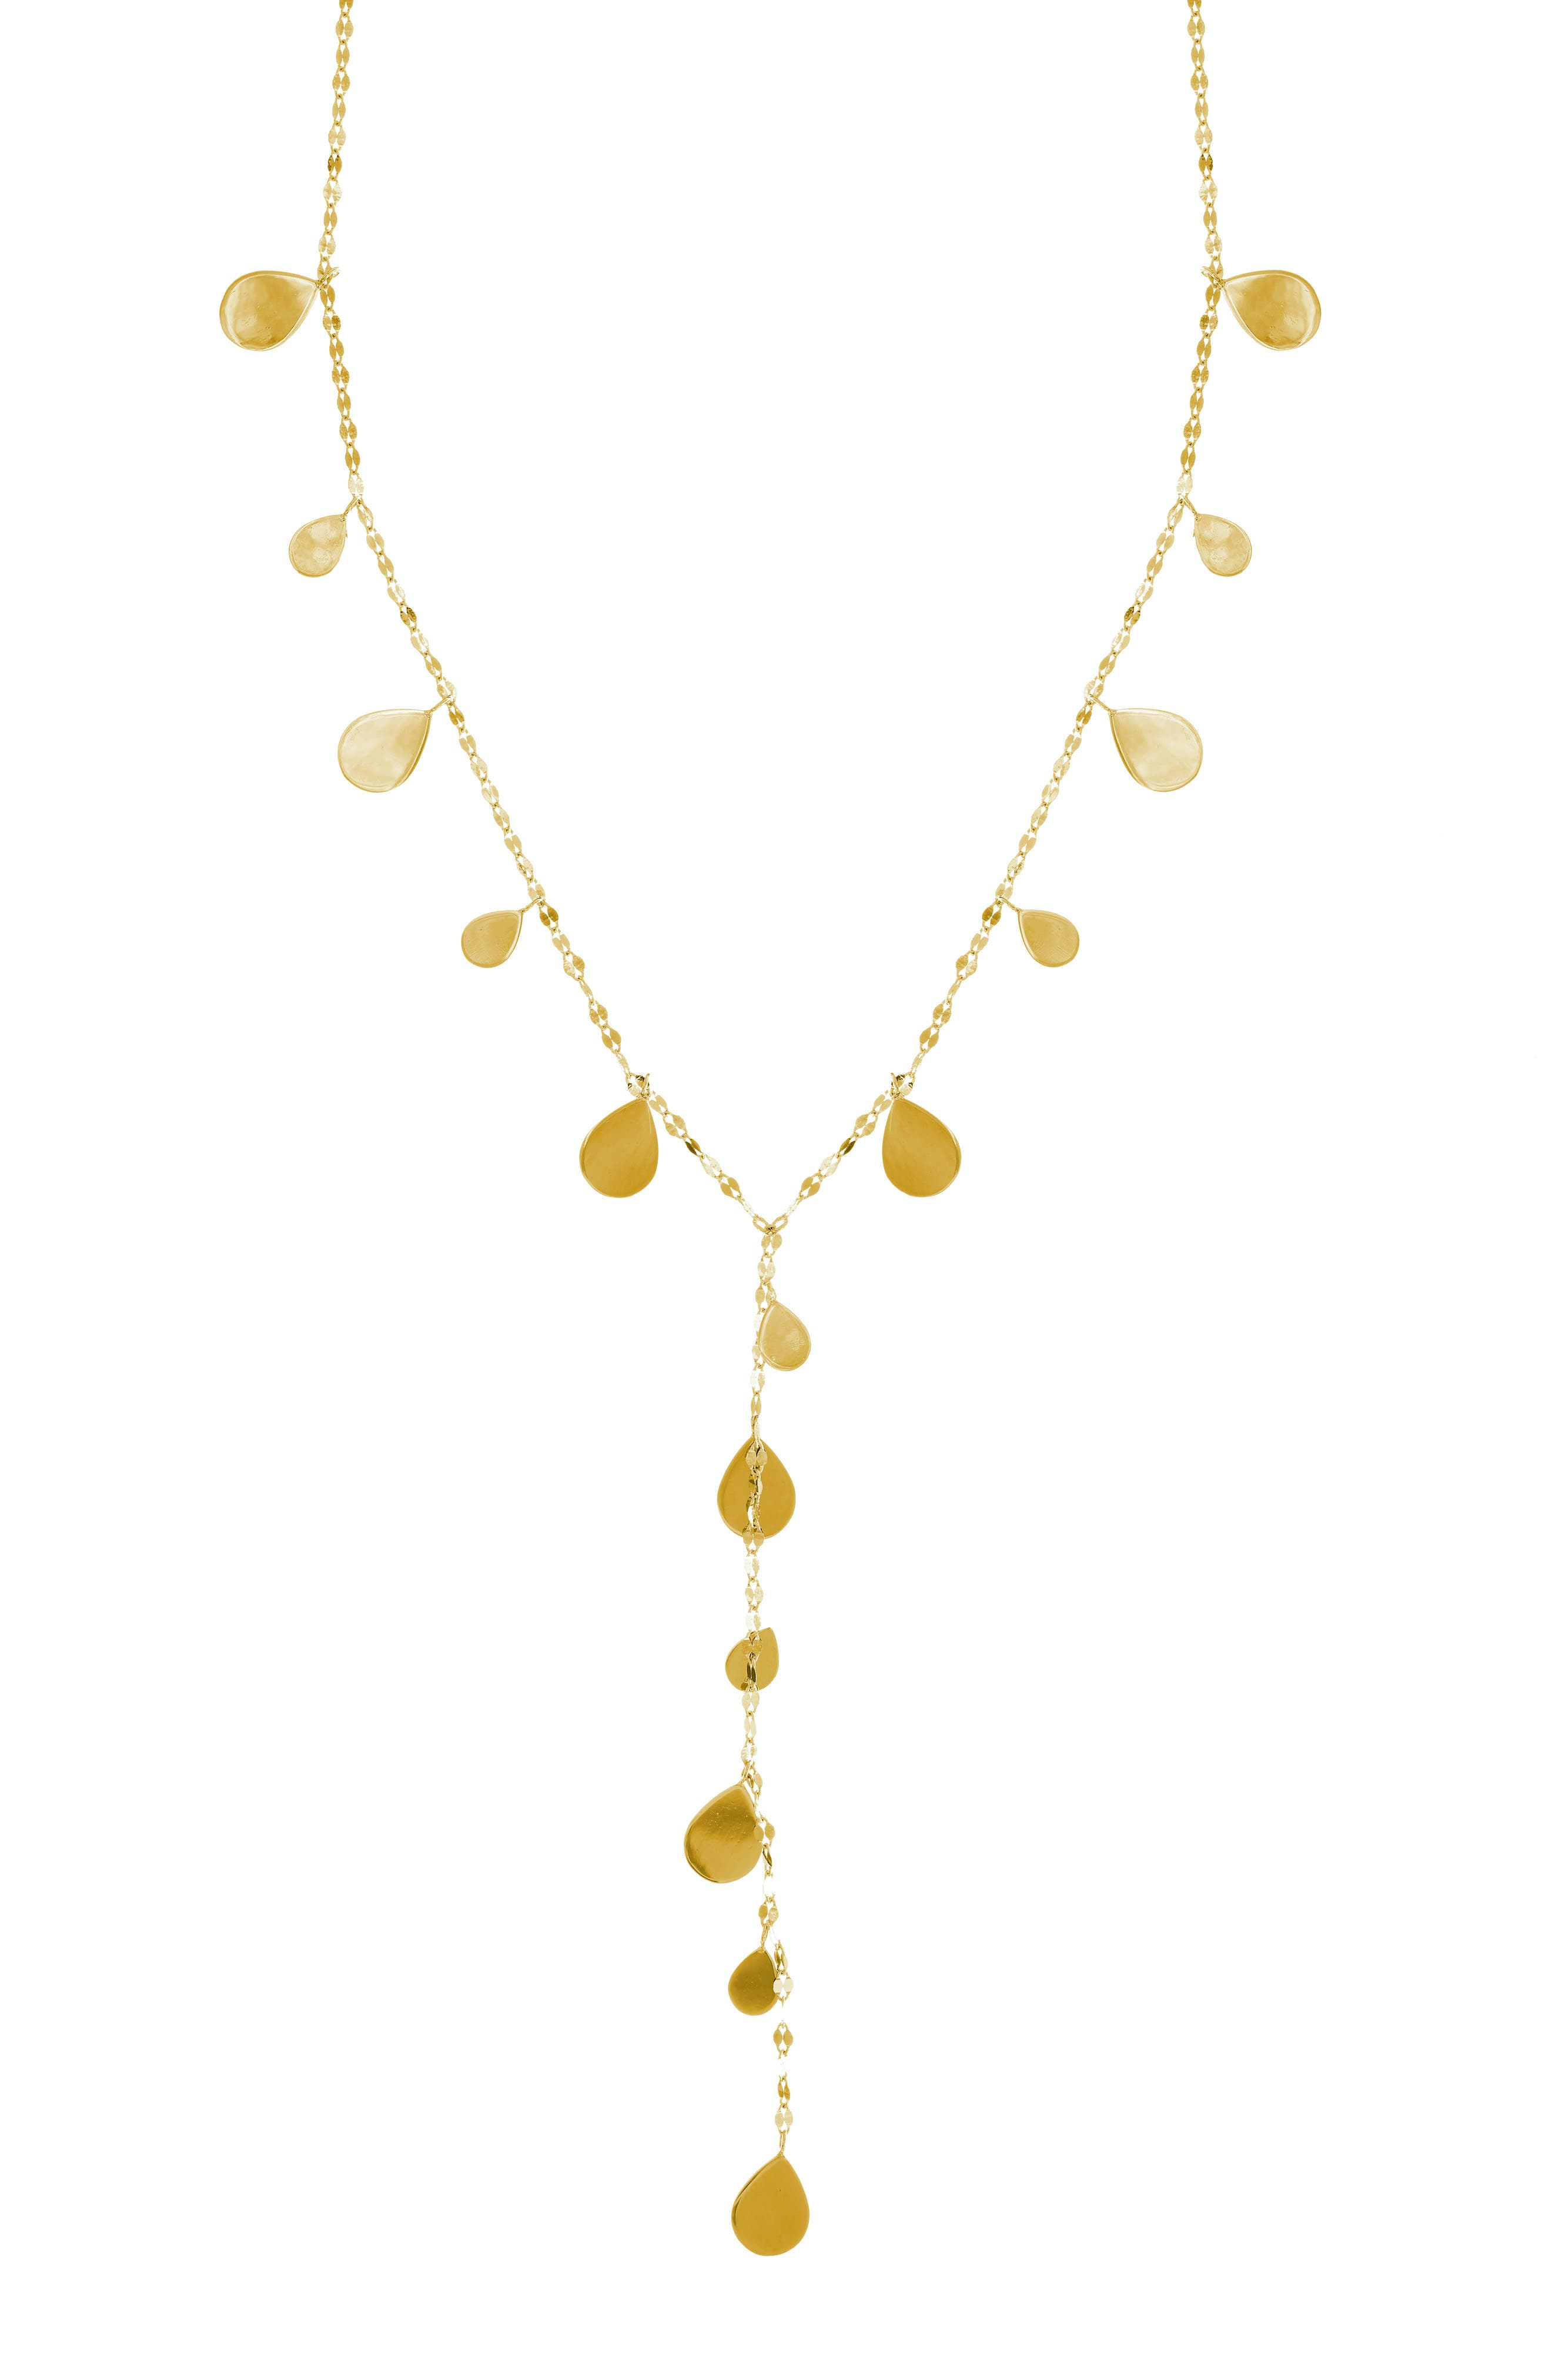 Teardrop Y-Necklace,                         Main,                         color, Yellow Gold